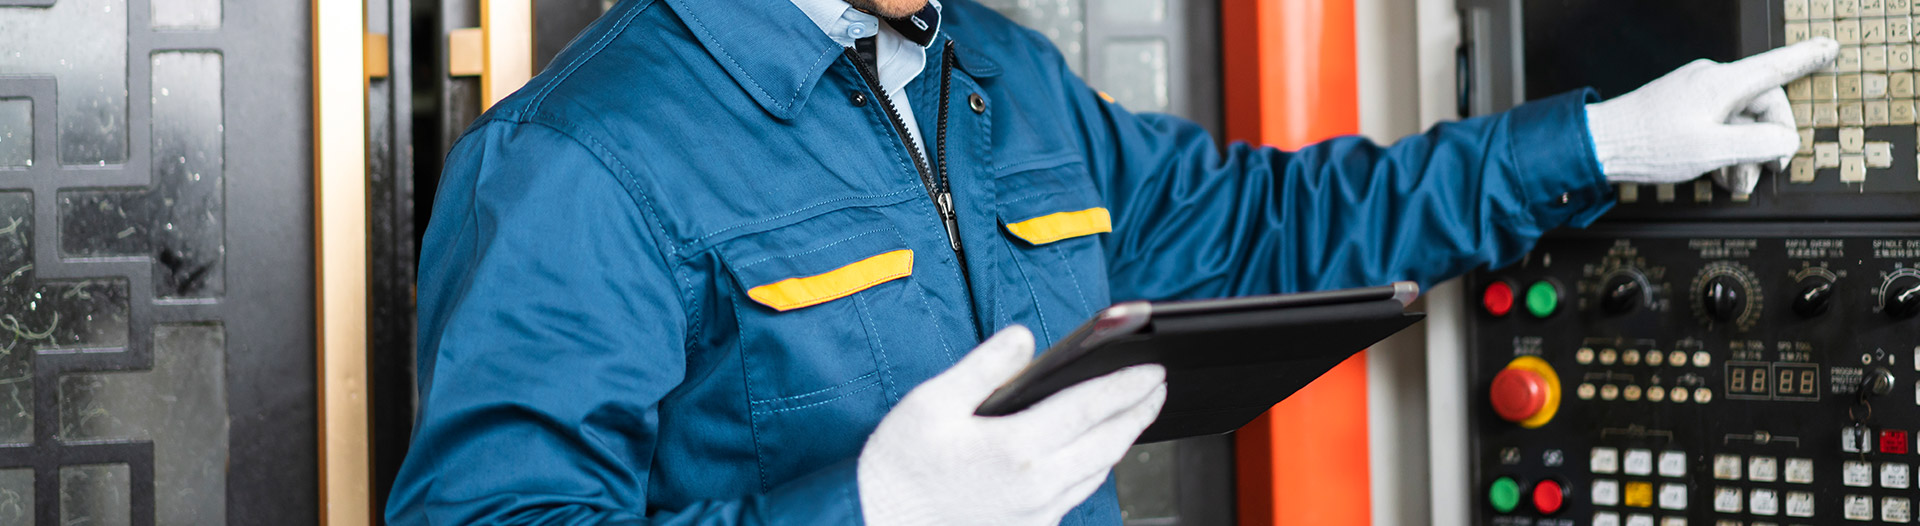 industrial worker using digital tools and tablet